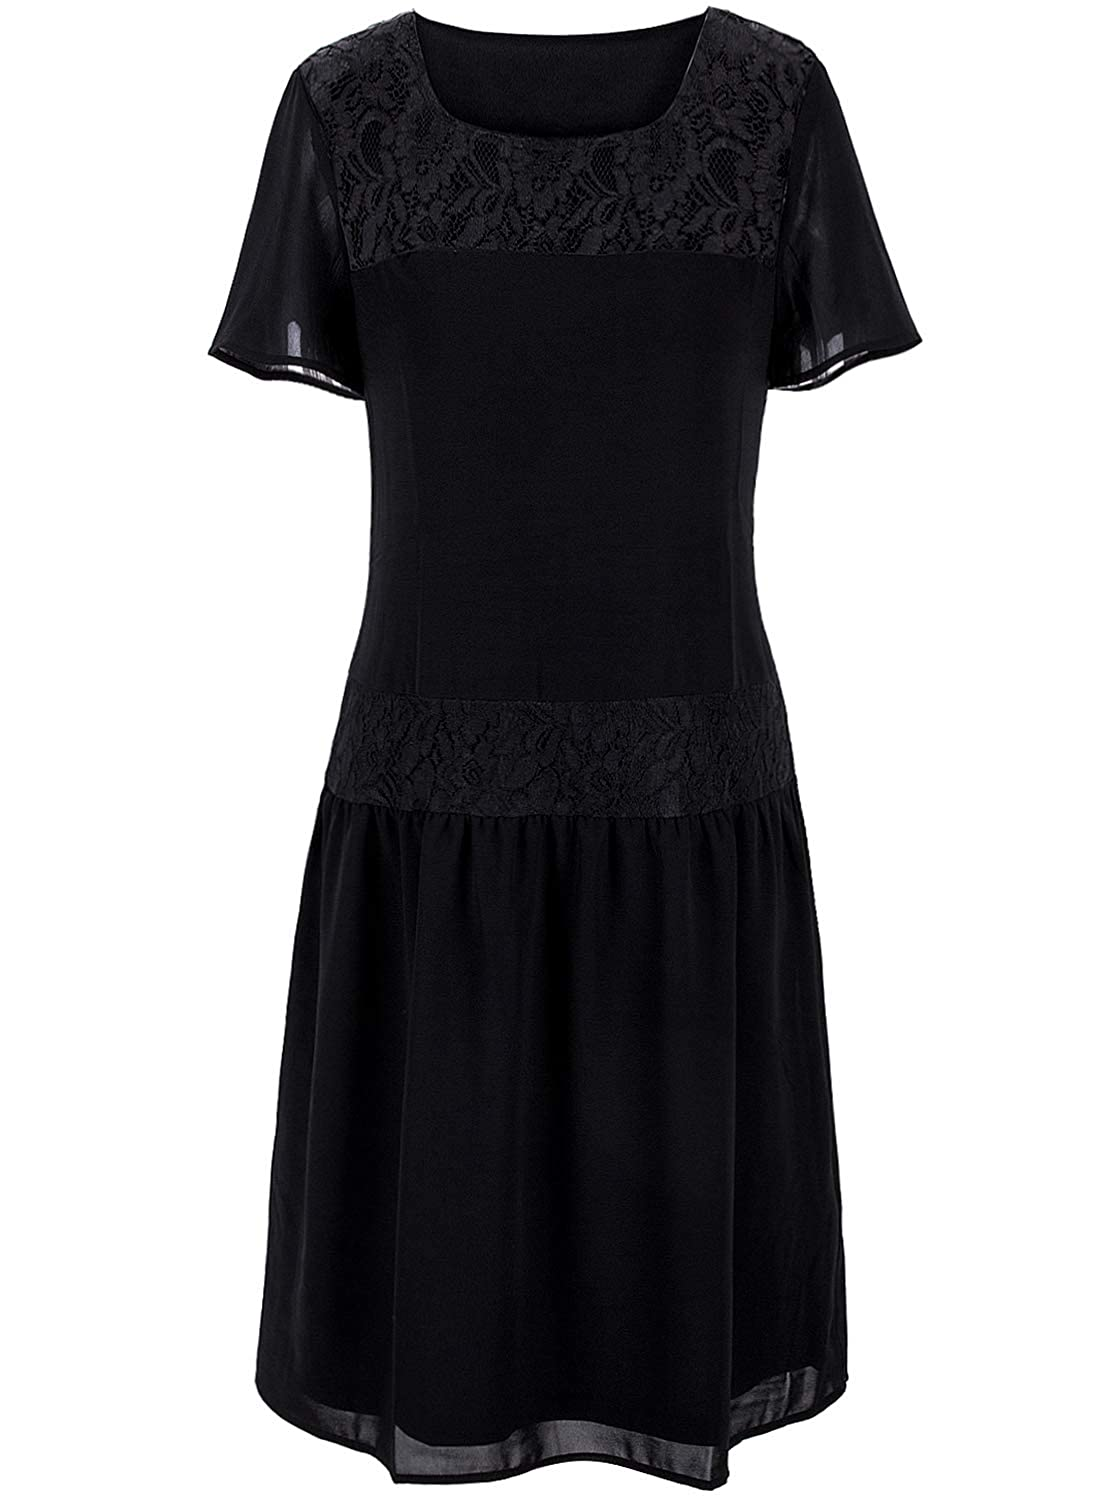 Black Flapper Dresses, 1920s Black Dresses VIJIV 1920s Inspired Flapper Dress High Tea Lace Short Sleeves Drop Waist Dress $34.99 AT vintagedancer.com